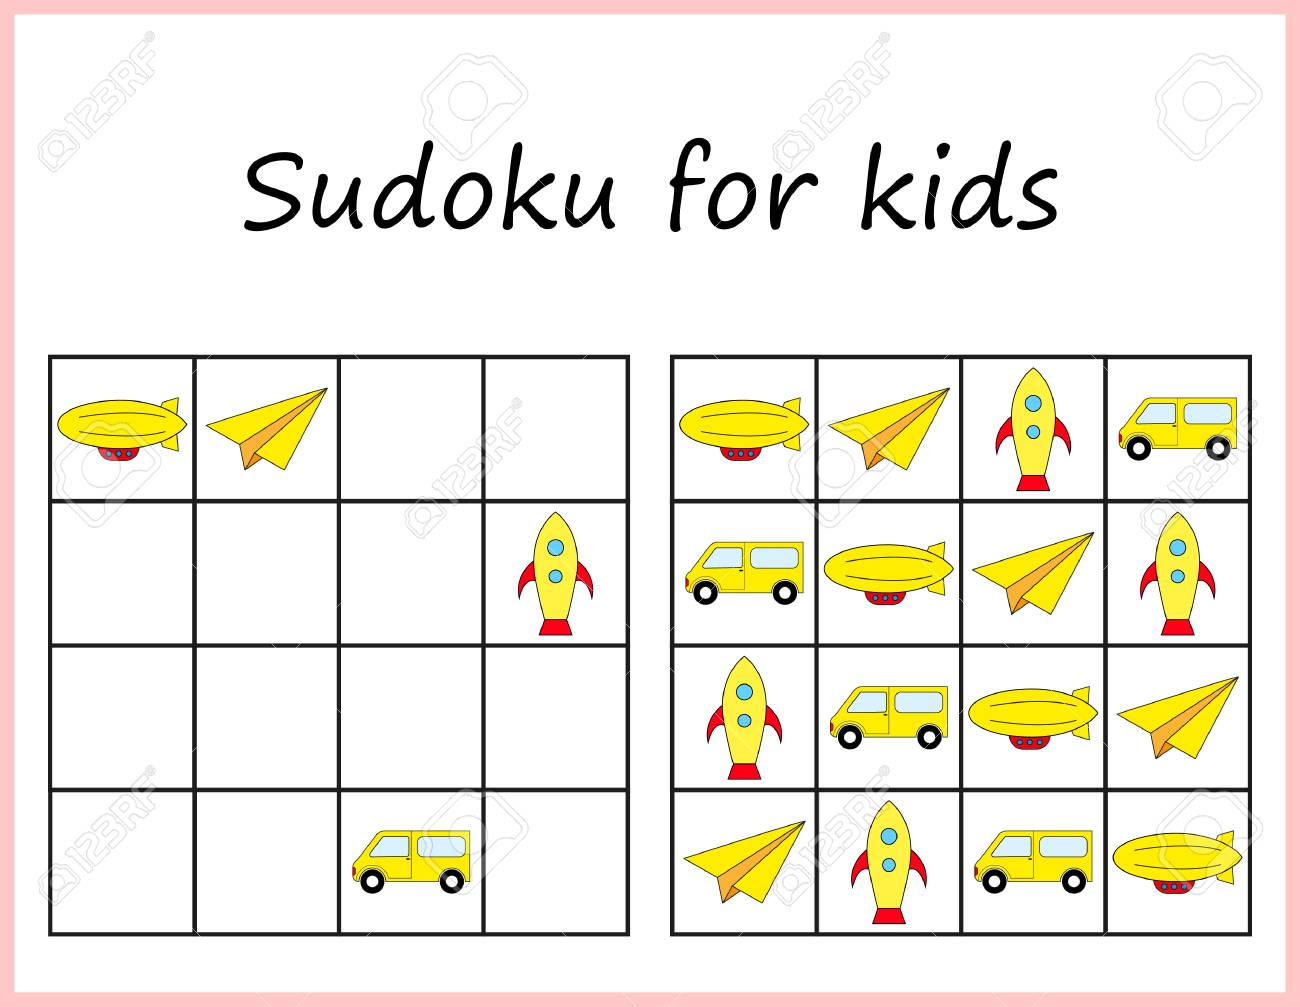 photograph relating to Sudoku for Kids Printable referred to as Sudoku for young children. Match for preschool youngsters, exercising logic. Worksheet..